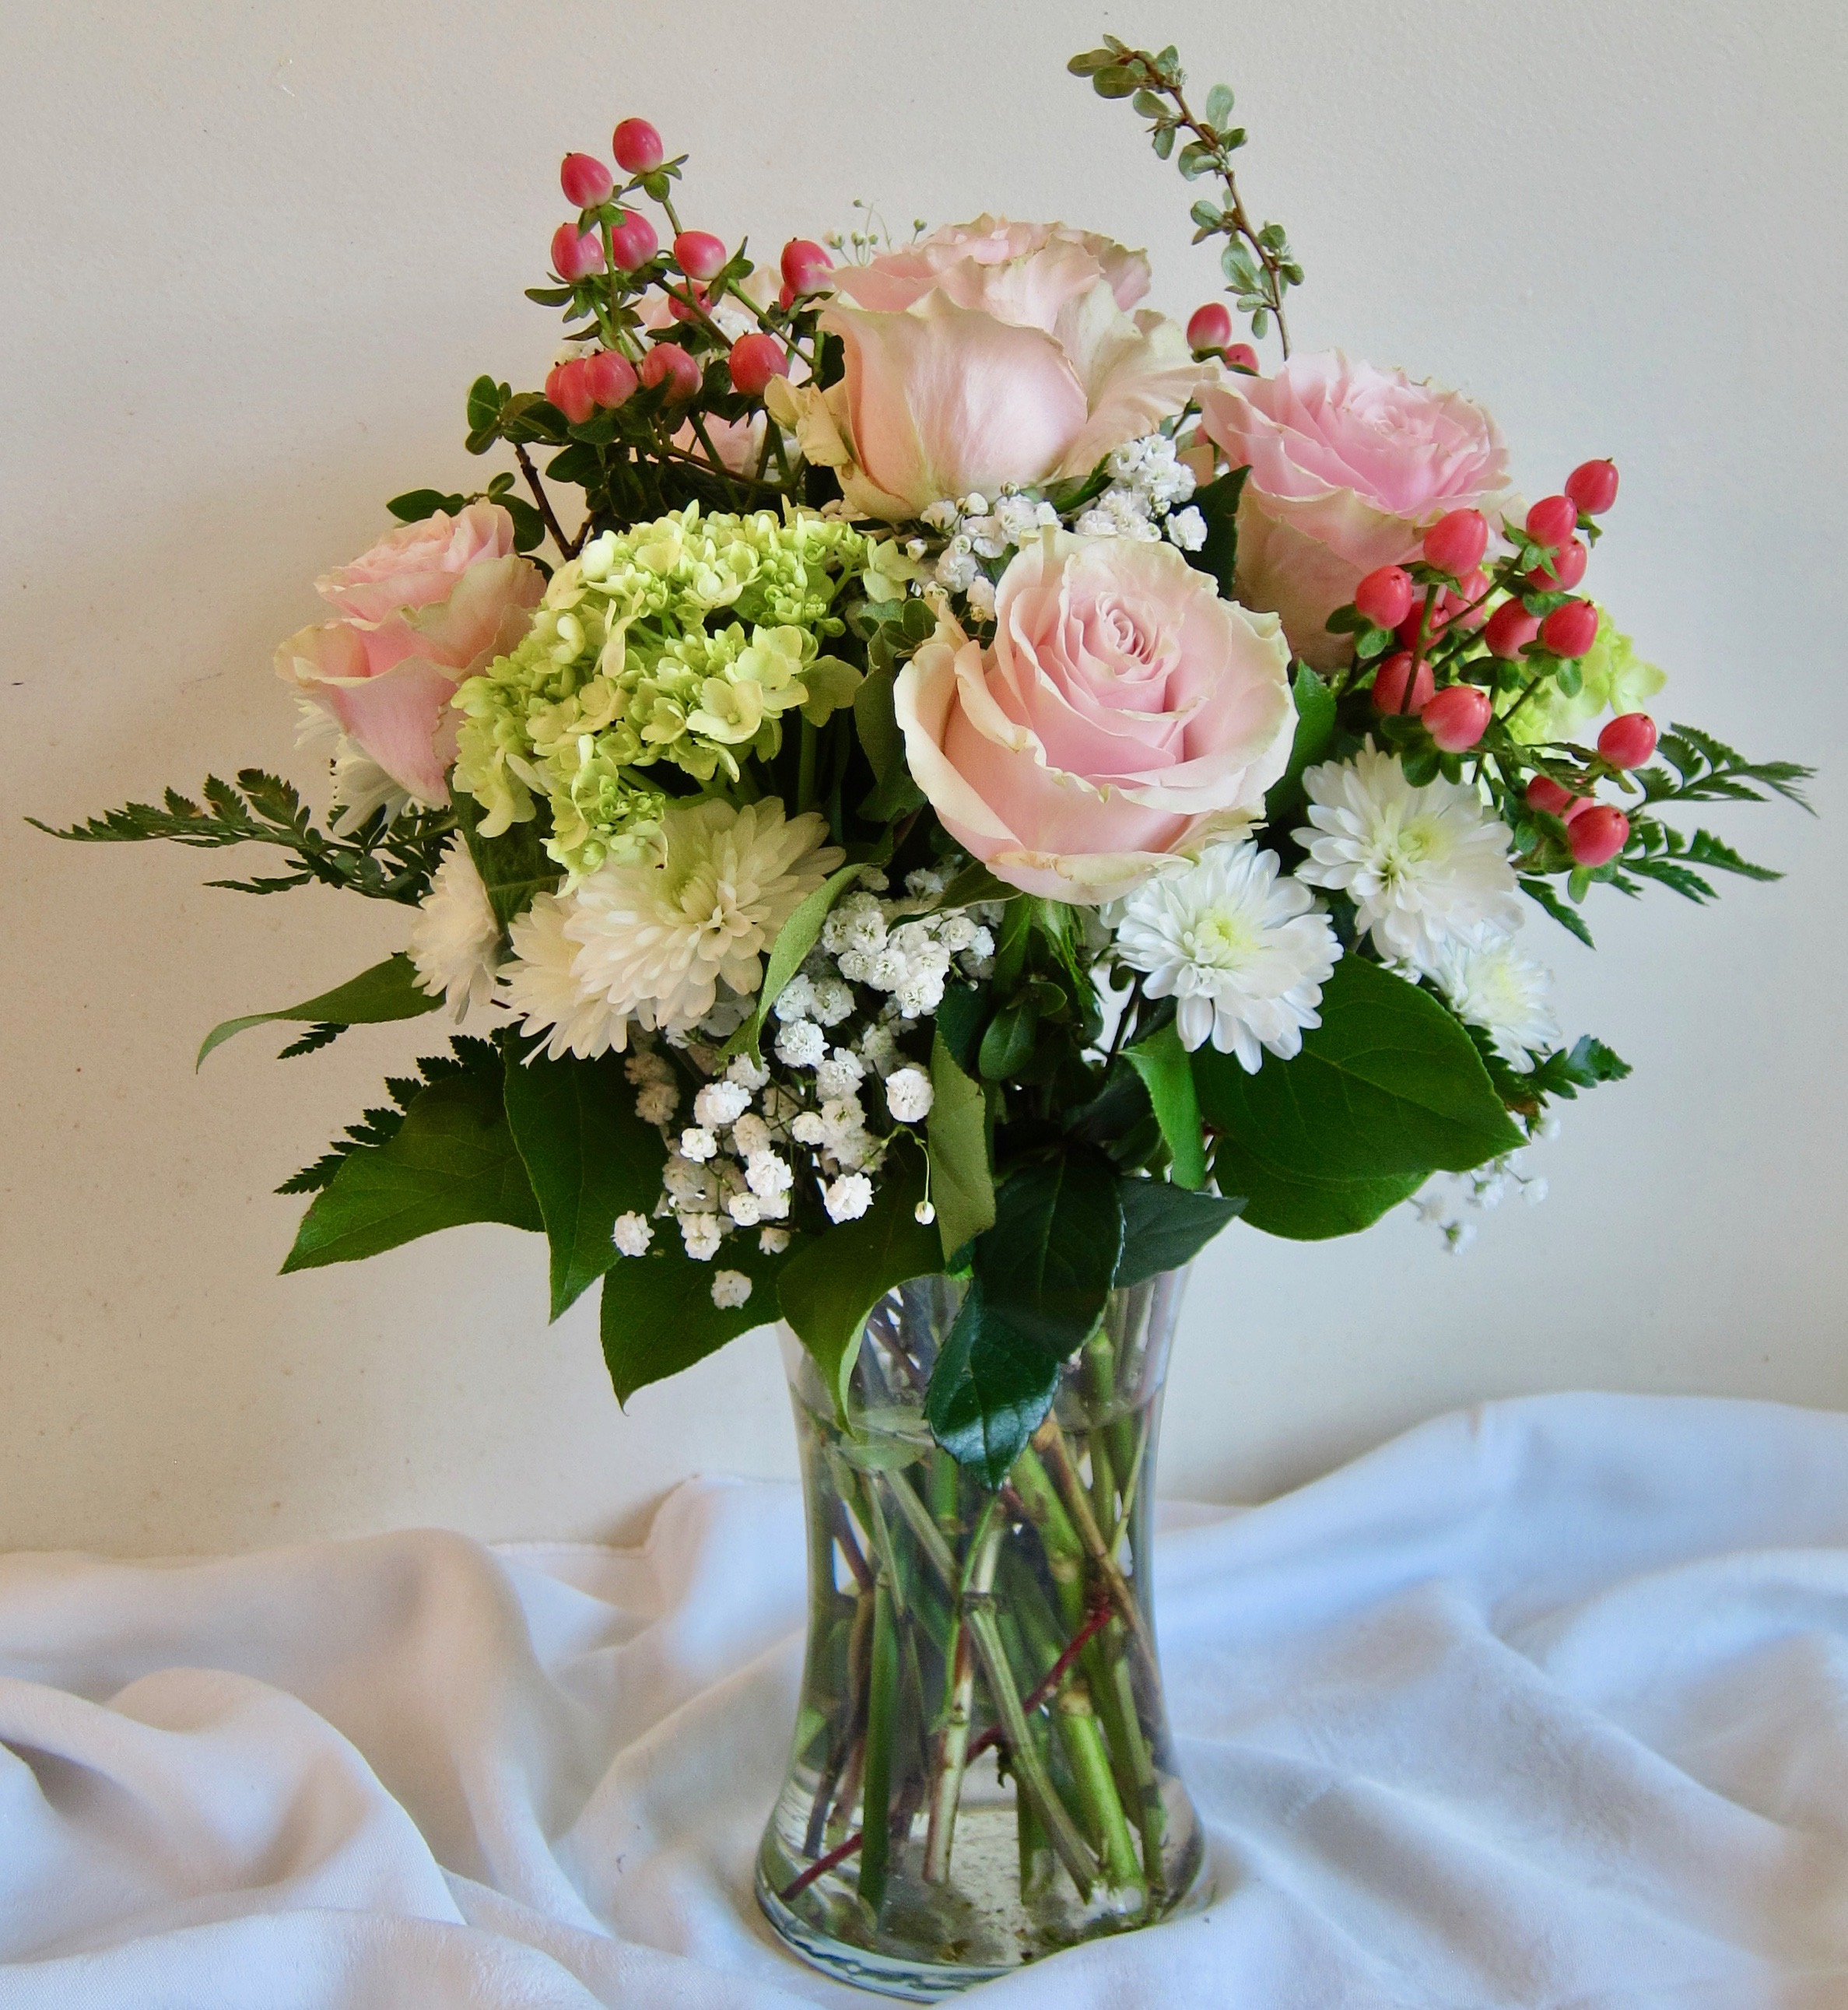 ELEGANT   lime green hydrangeas and blush roses with berries and white accents, $75 and $95 sizes.